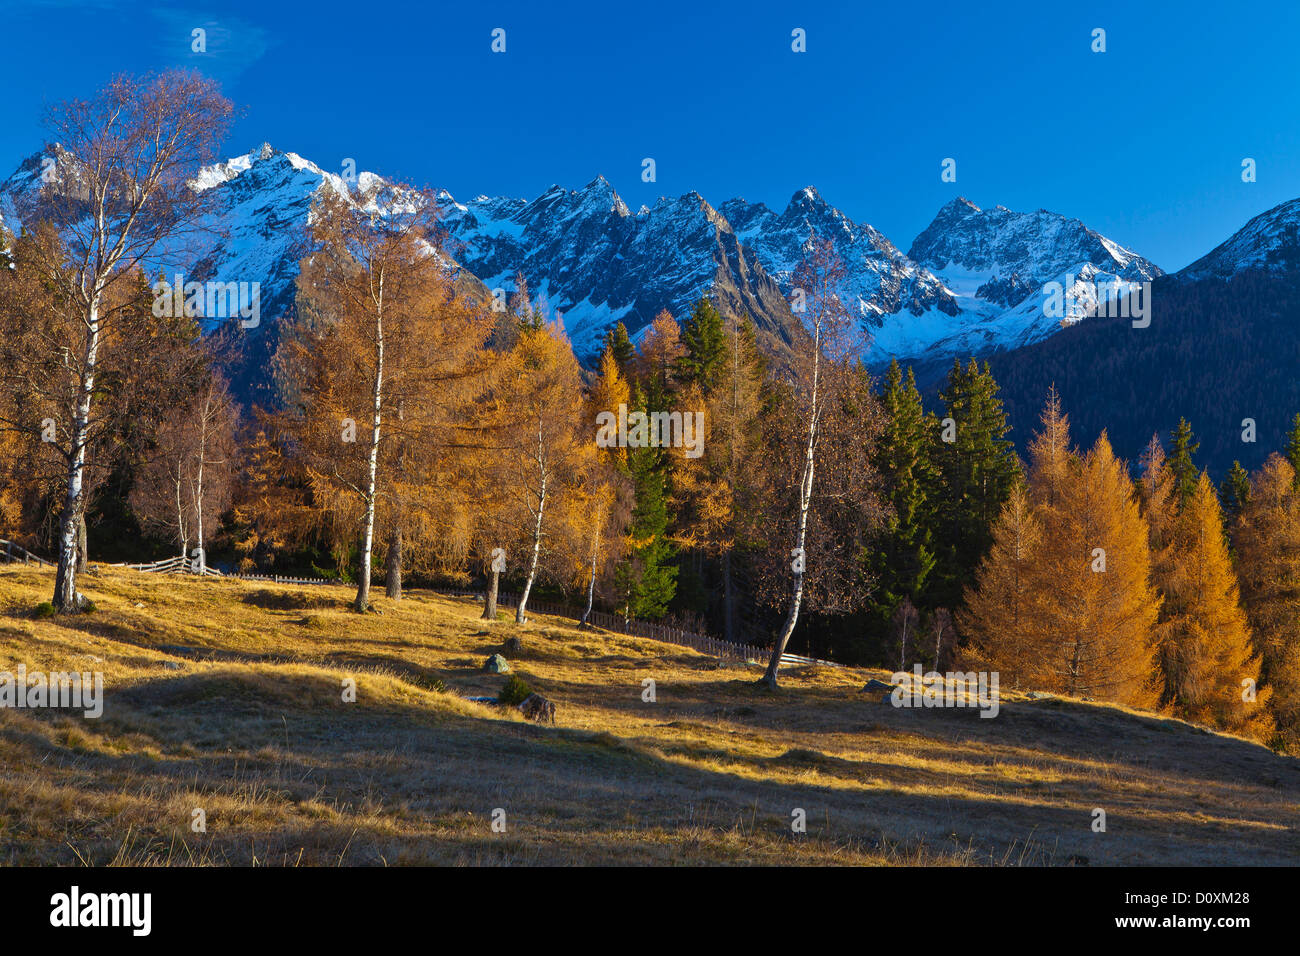 Austria, Europe, Tyrol, Tirol, Kaunertal, mountain Kauner, mountain pastures, birches, larches, mountains, snow, Stock Photo